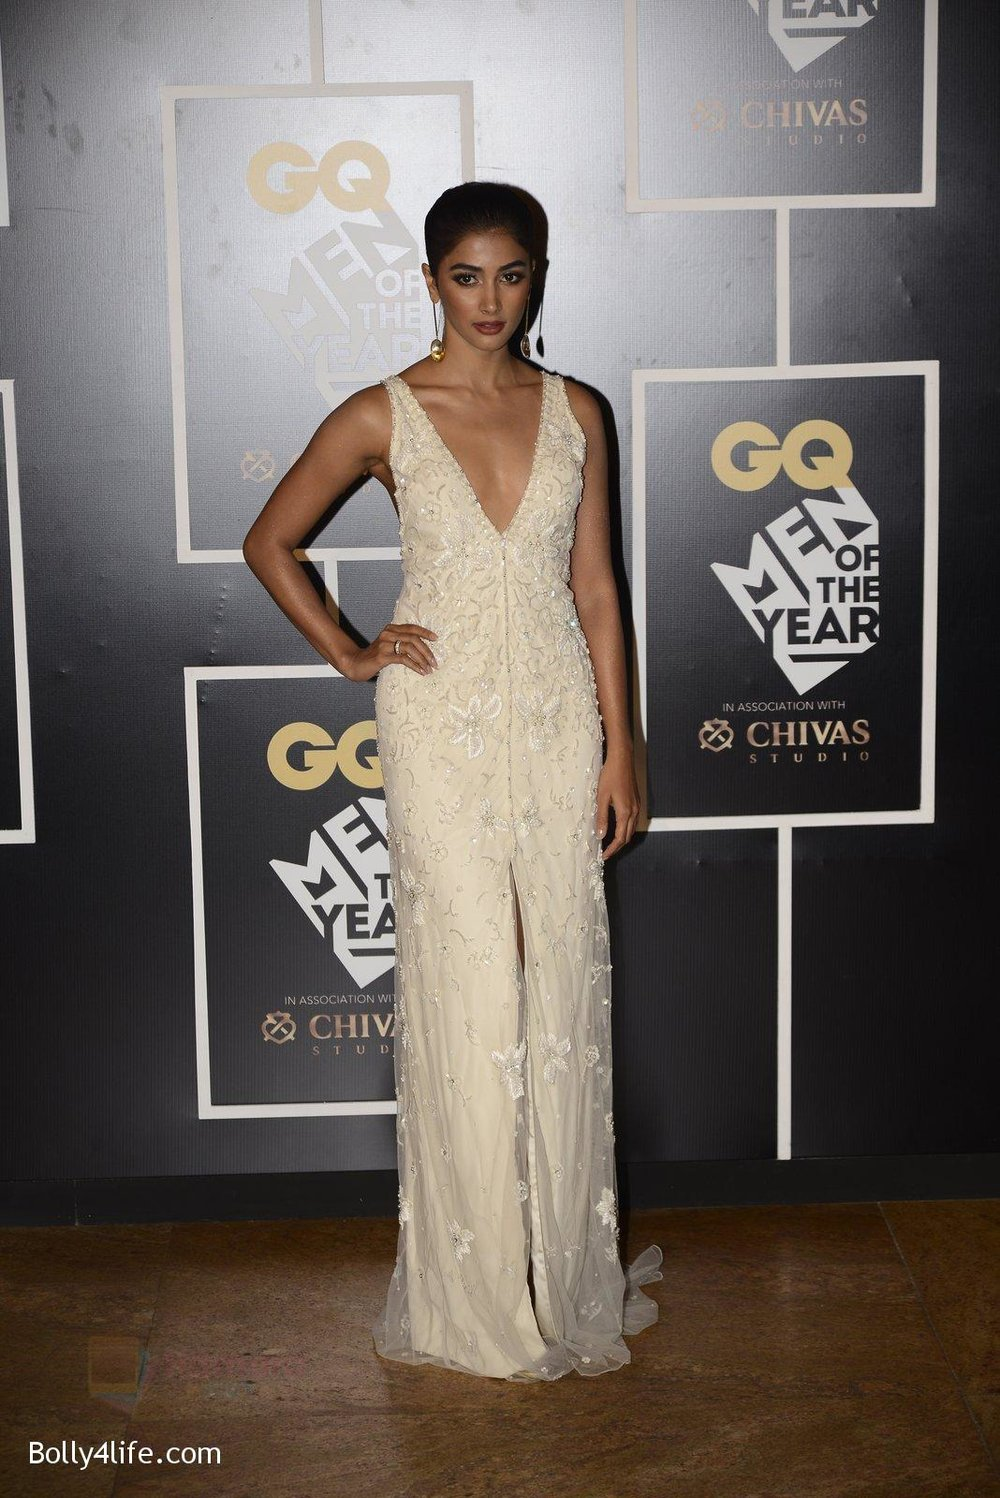 Pooja-Hegde-at-GQ-MEN-OF-THE-YEAR-on-27th-Sept-2016-1006.jpg